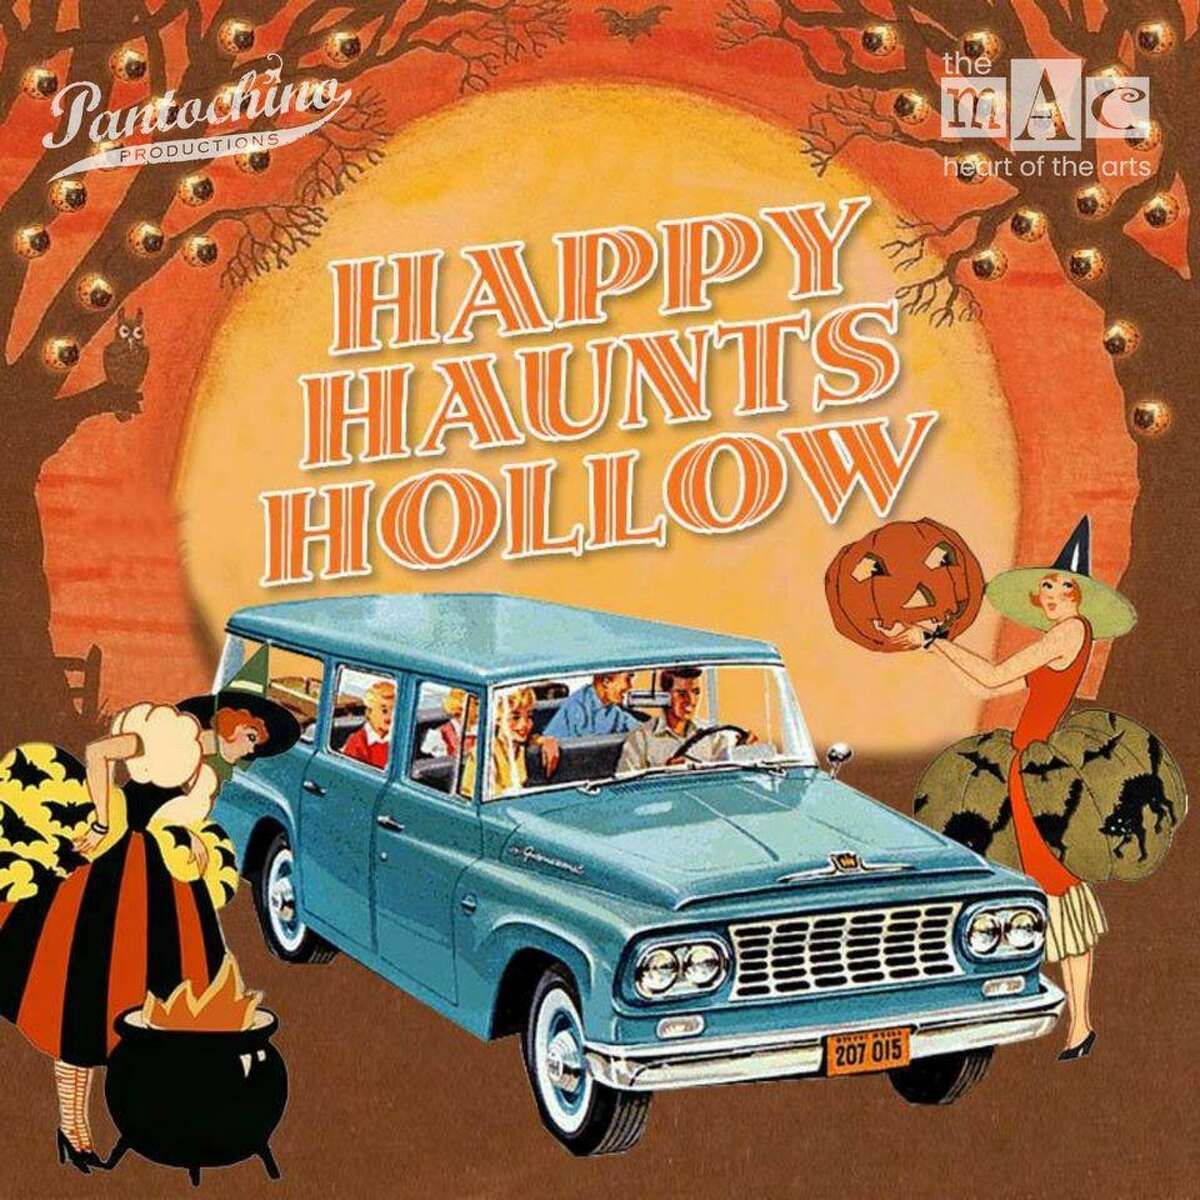 The Milford Arts Council and Pantochino Productions will present Happy Haunts Hollow, a drive-through Halloween experience for families Oct. 22-25, from 6-9 p.m., at Eisenhower Park, 780 North St., Milford.